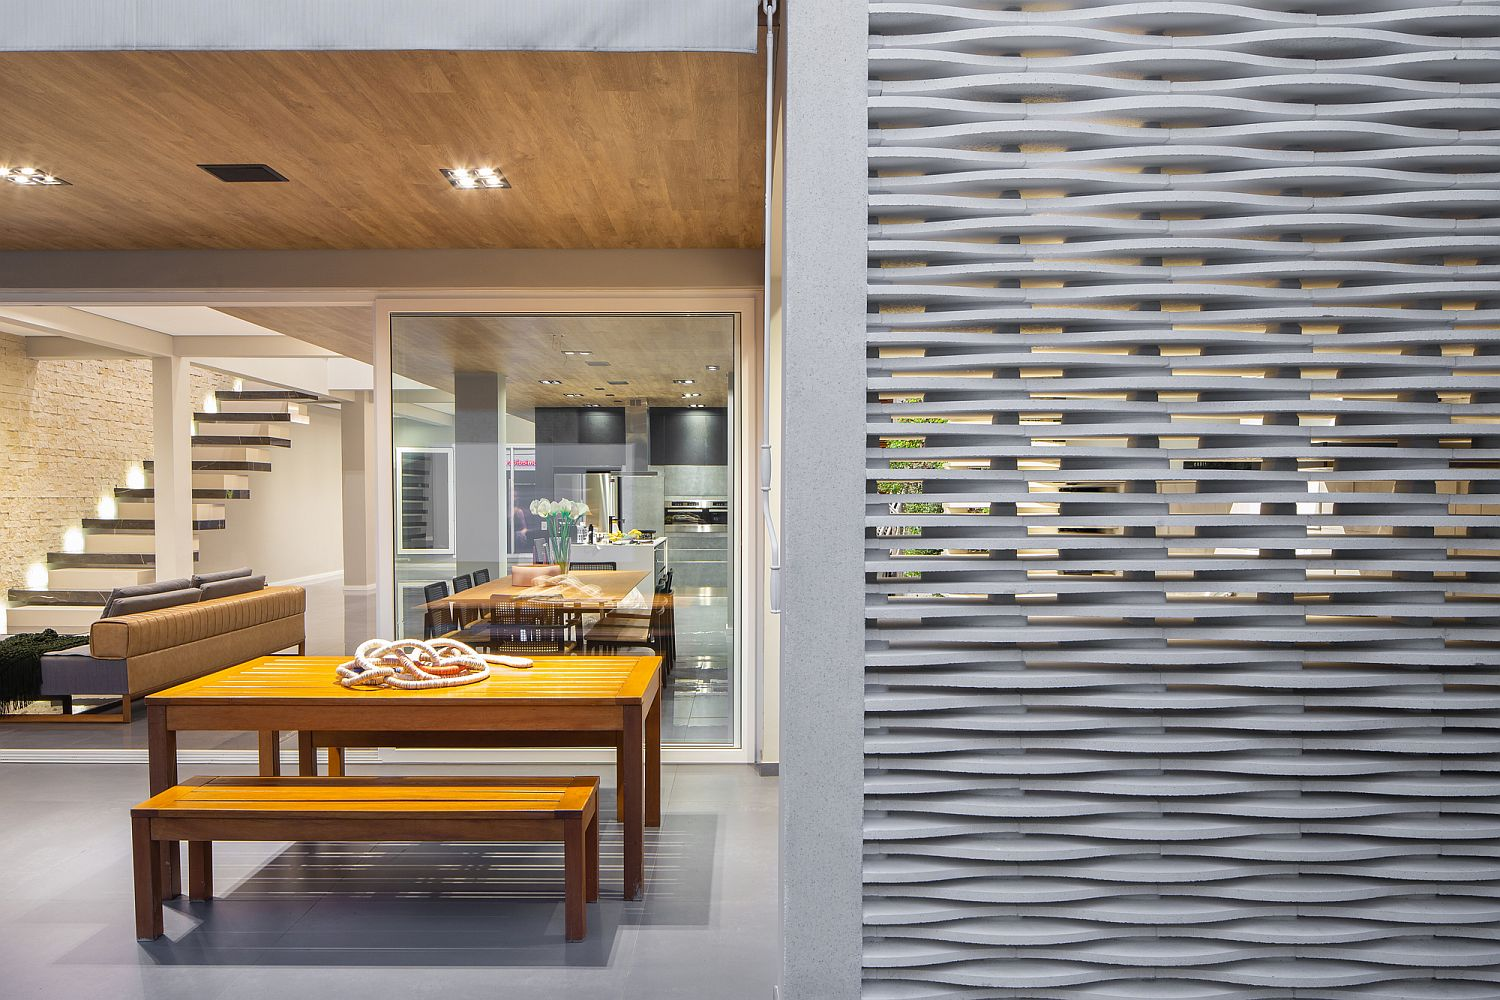 Different-textural-finshes-inside-the-house-make-a-bold-visual-statement